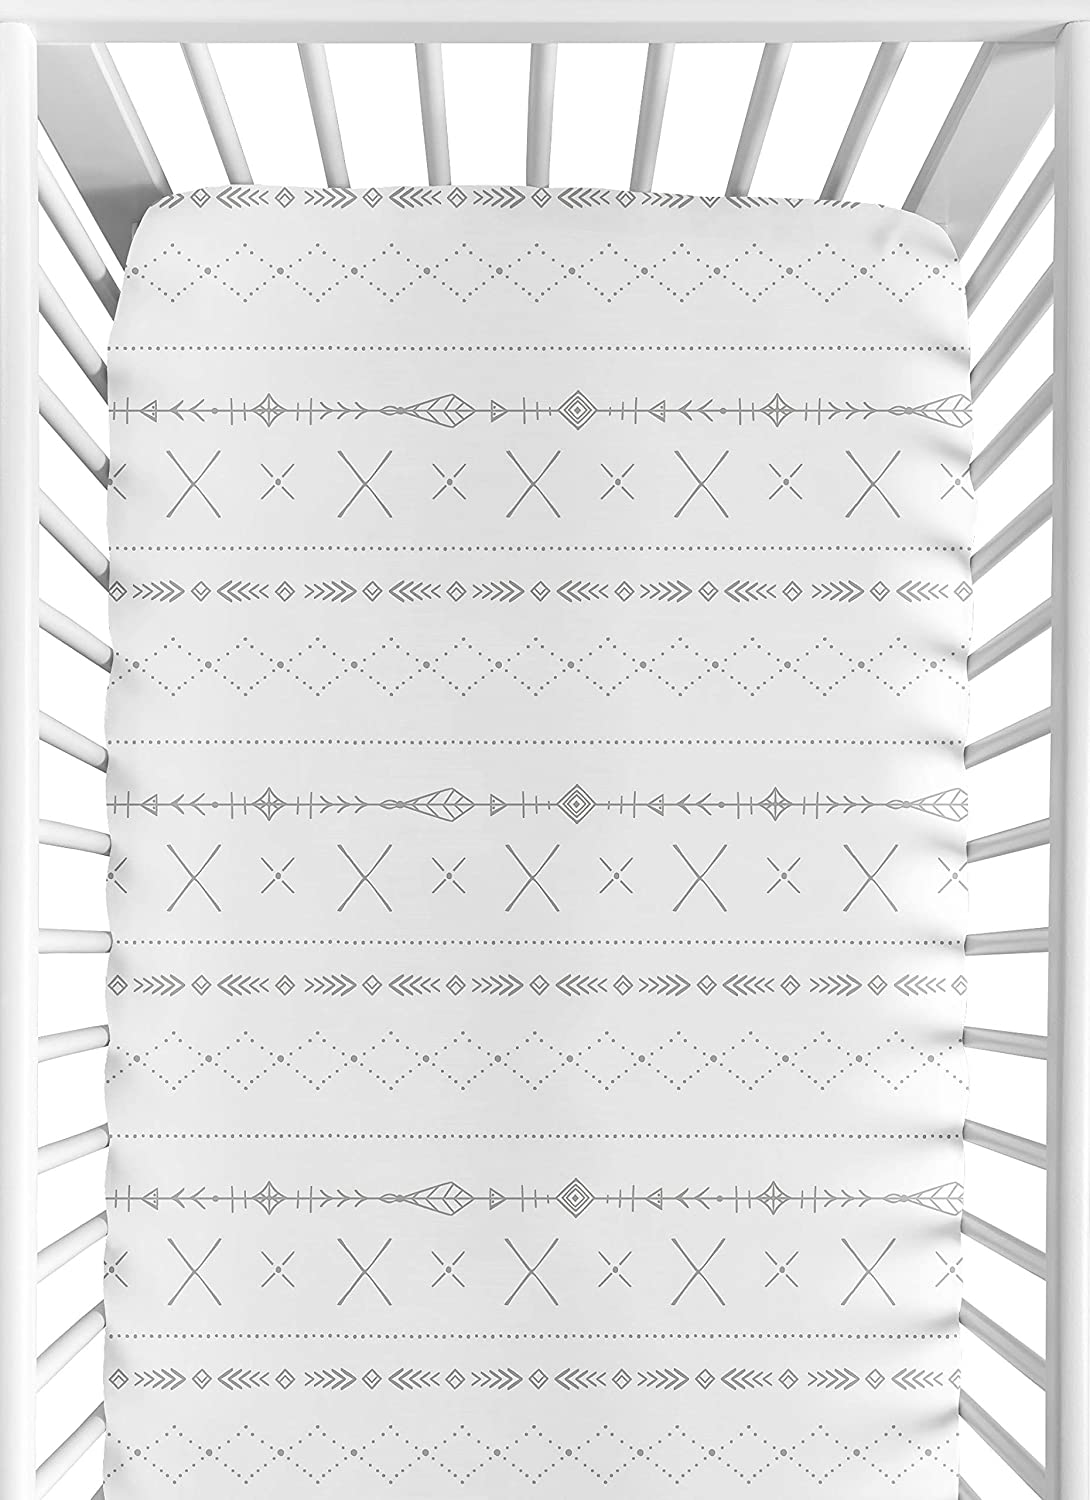 Sweet Jojo Designs Grey and White Boho Tribal Unisex Boy or Girl Baby or Toddler Nursery Fitted Crib Sheet for Gray Woodland Forest Friends Collection